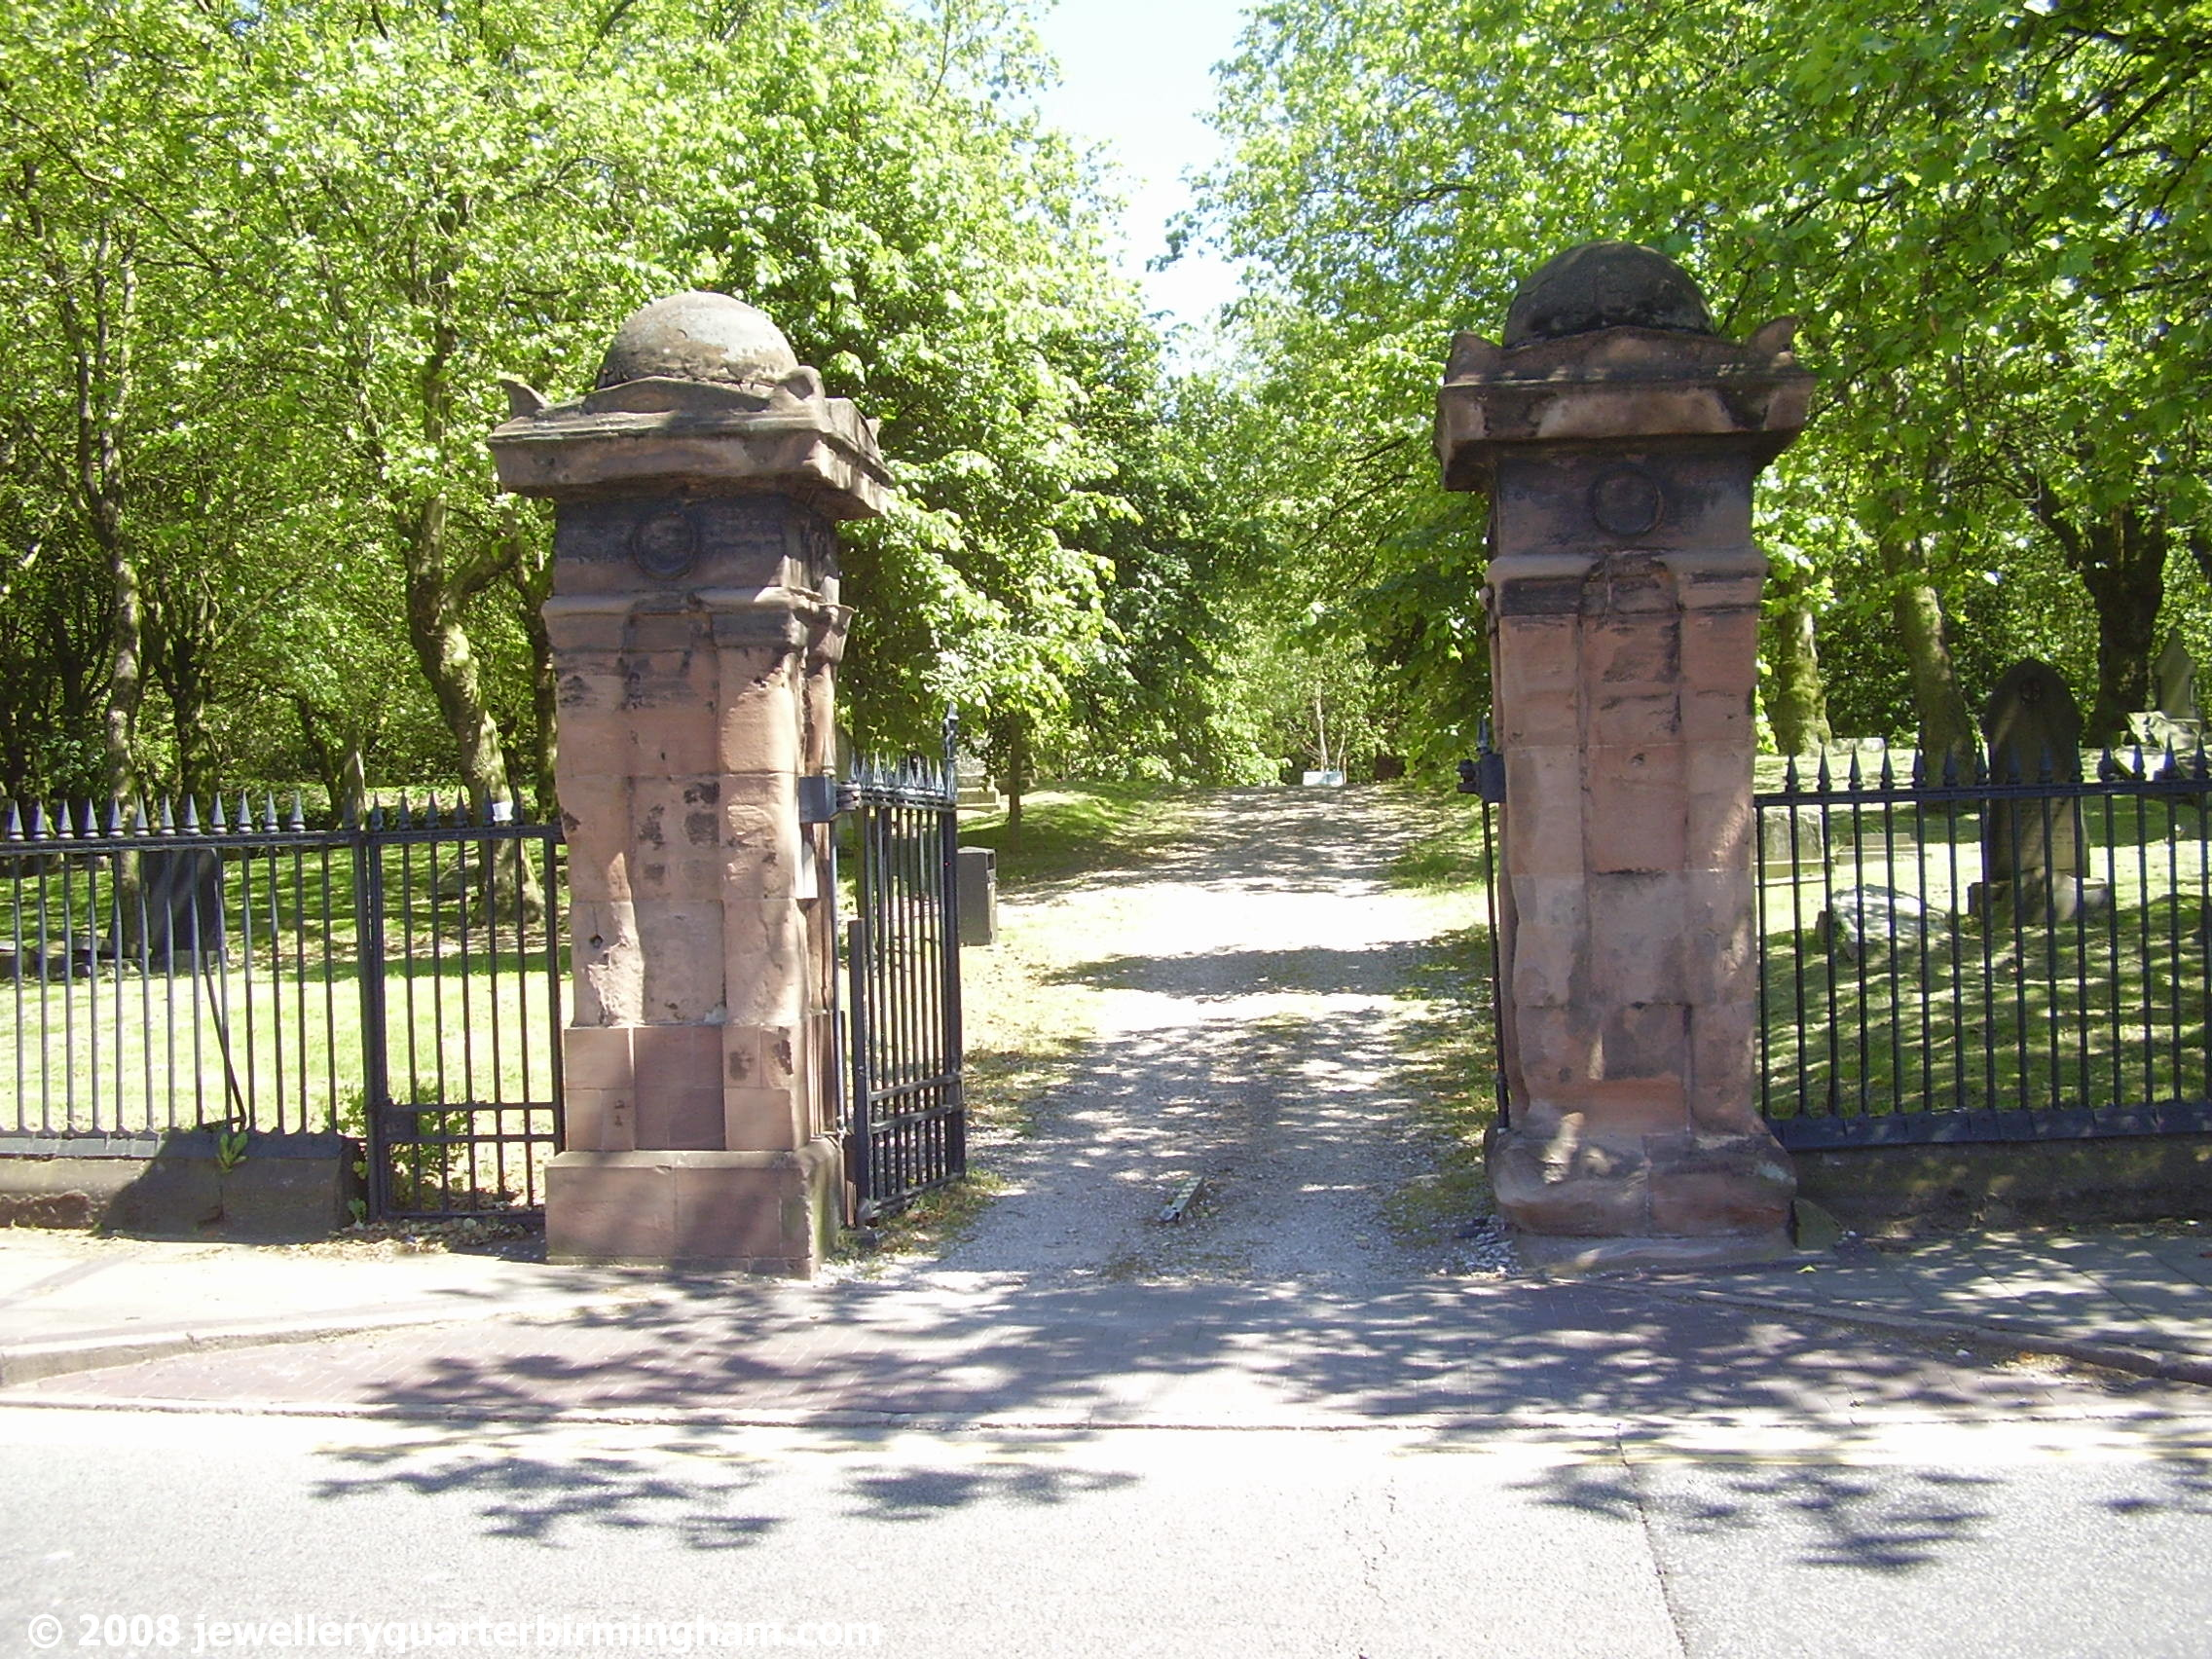 Main-entrance-in-Icknield-St-to-Key-Hill-Cemetery.jpg 2008